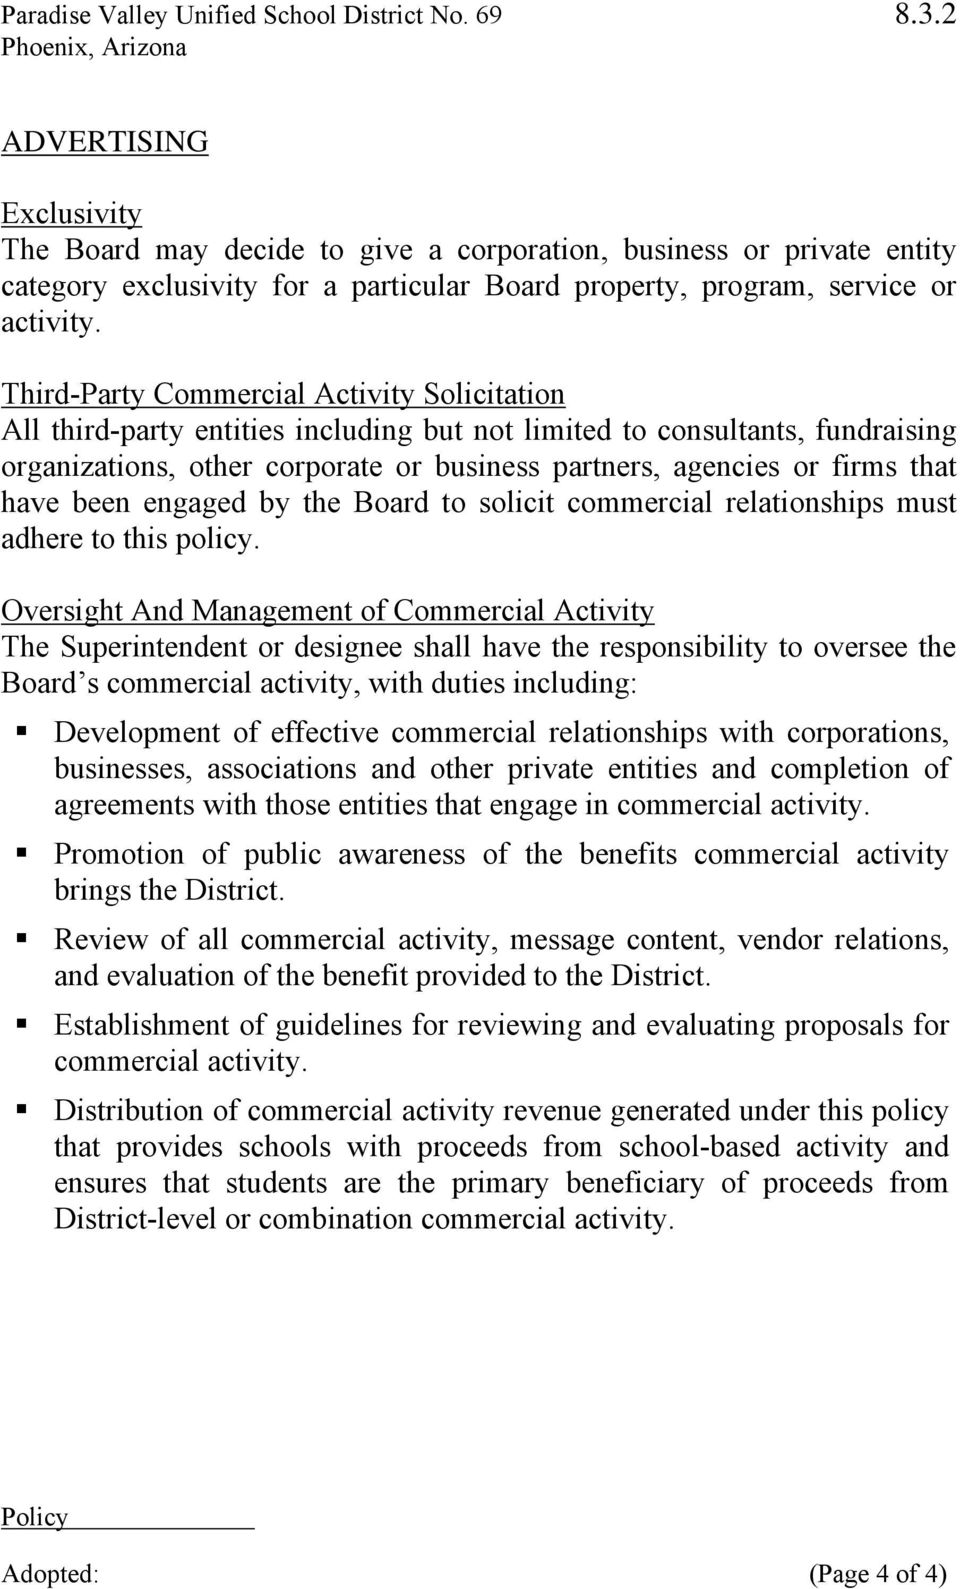 have been engaged by the Board to solicit commercial relationships must adhere to this policy.